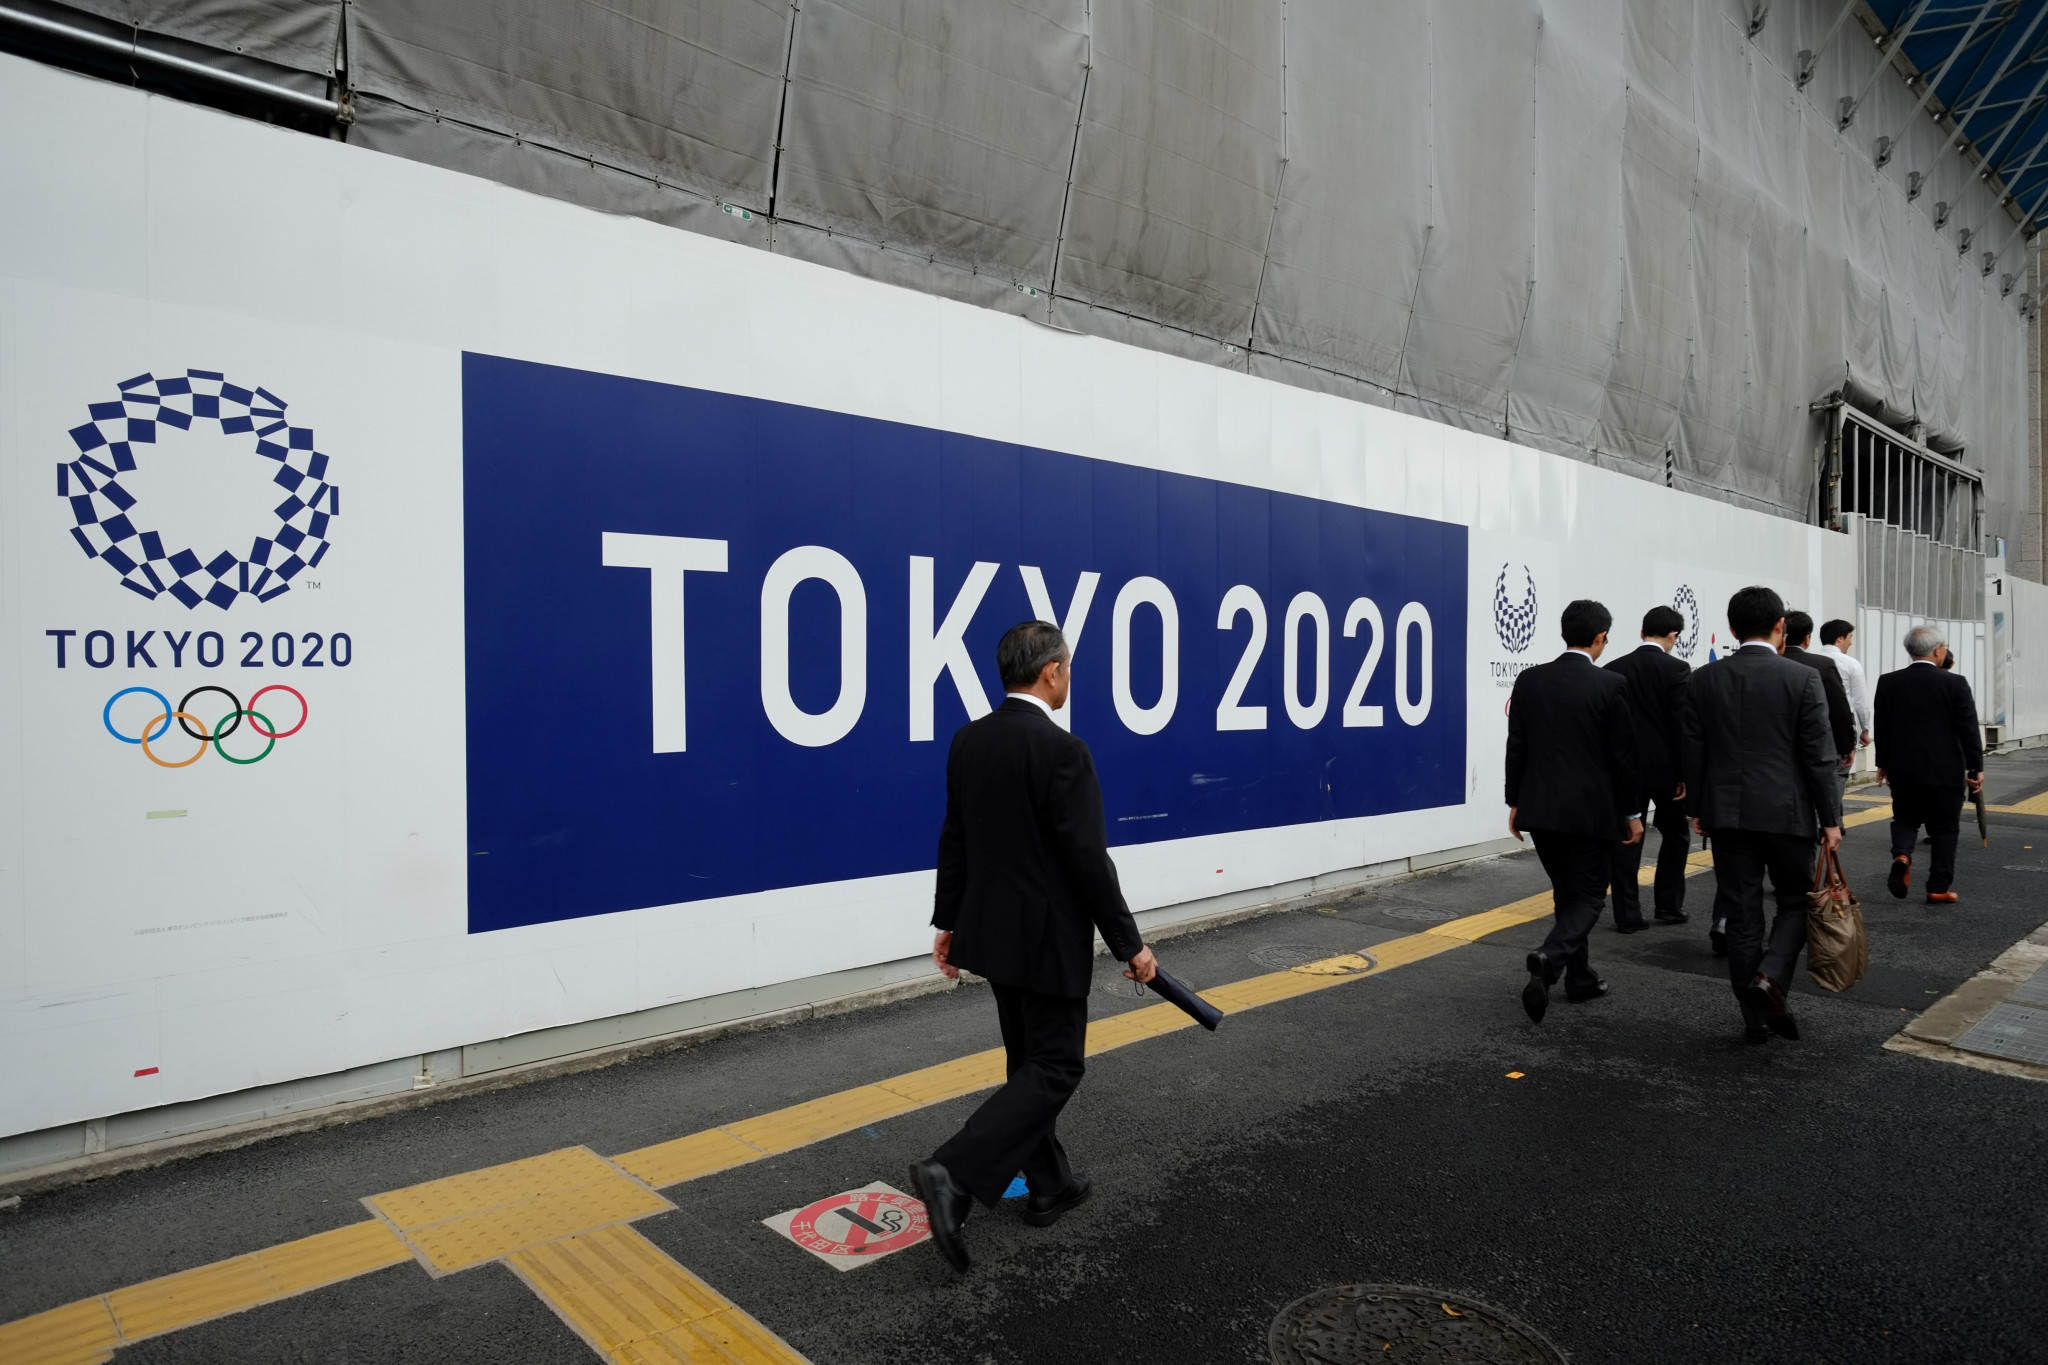 Tokyo 2020 will be boosted by a law prohibiting the resale of tickets above their actual value ©Getty Images